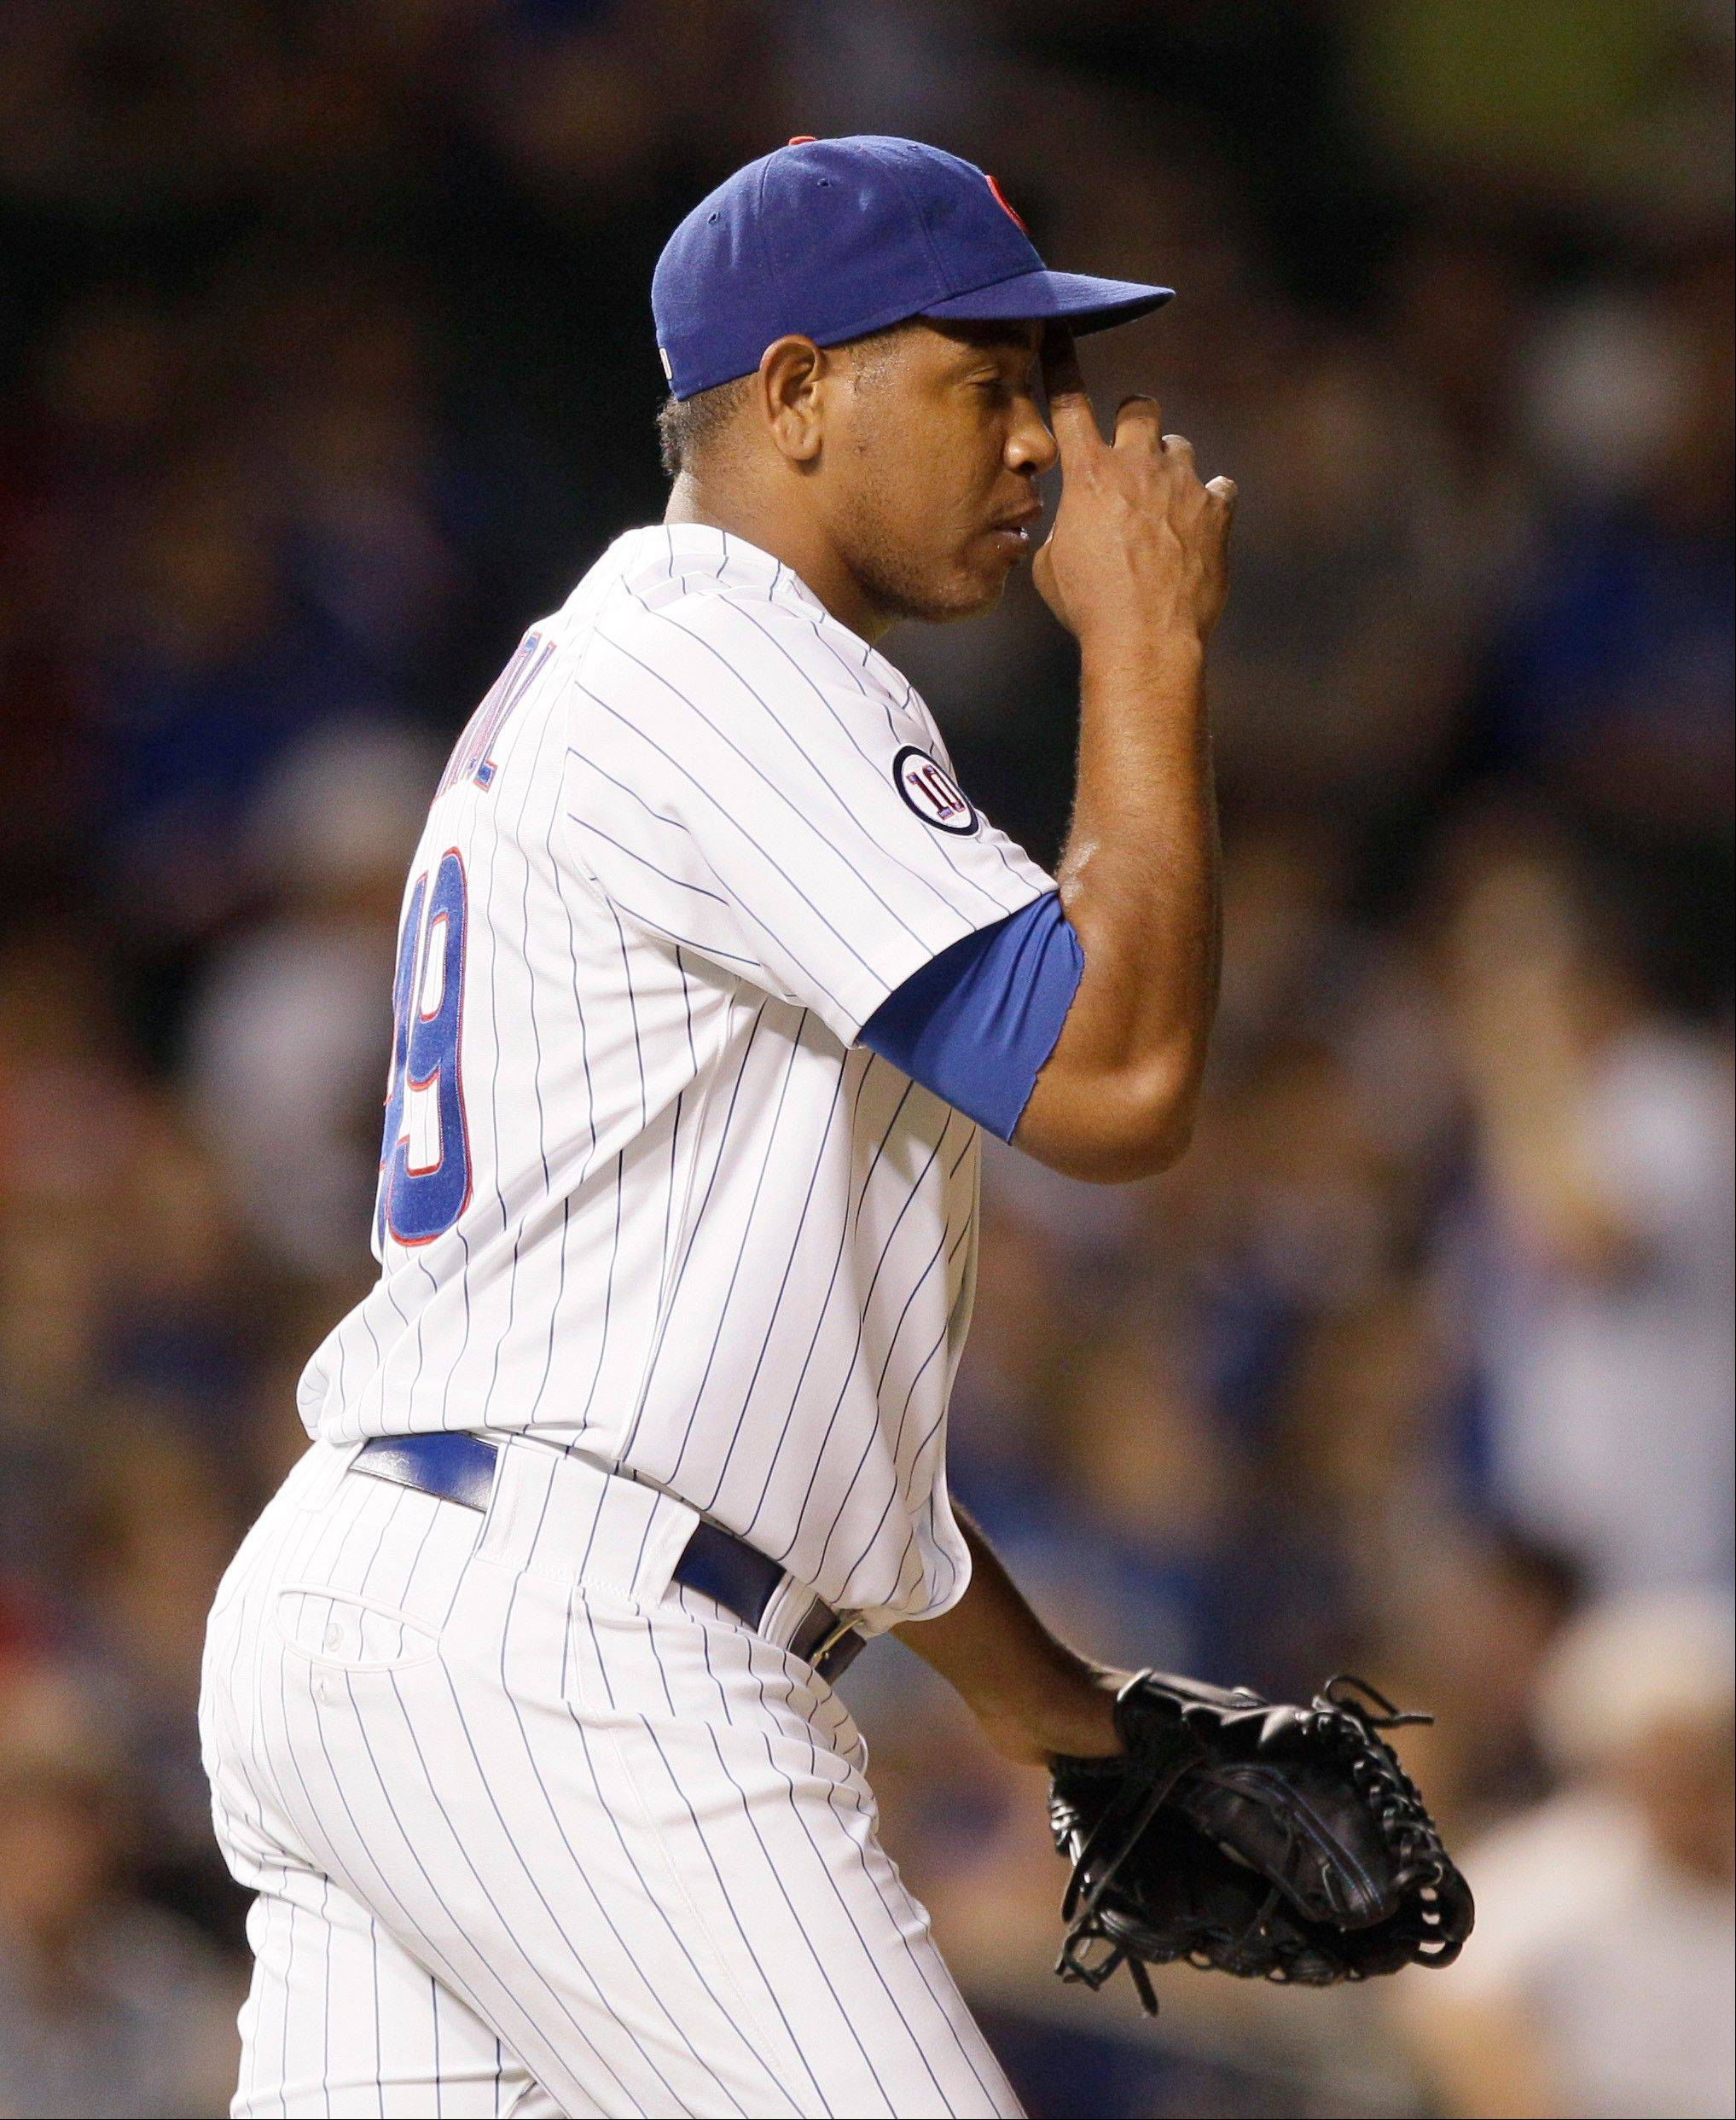 Cubs closer Carlos Marmo gave up 5 earned runs in the ninth inning Thursday night.